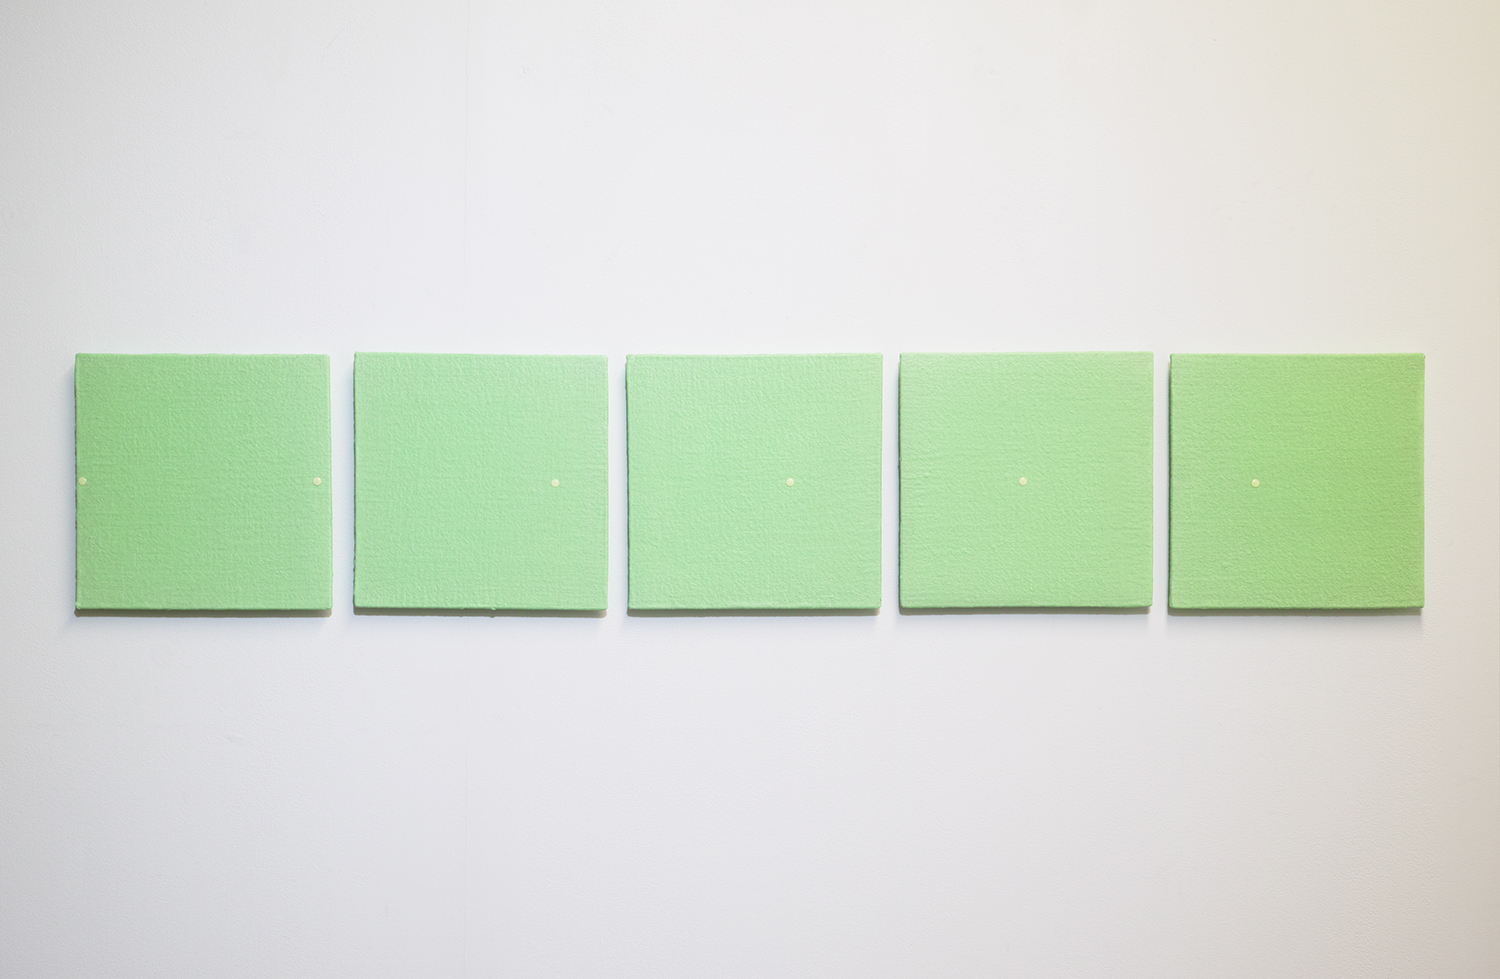 等間隔/Equal interval|Acrylic paint,  luminescent pigment and seal on panel|215 x 215 x 20 mm set of 5|2020<br>¥130,000-250,000